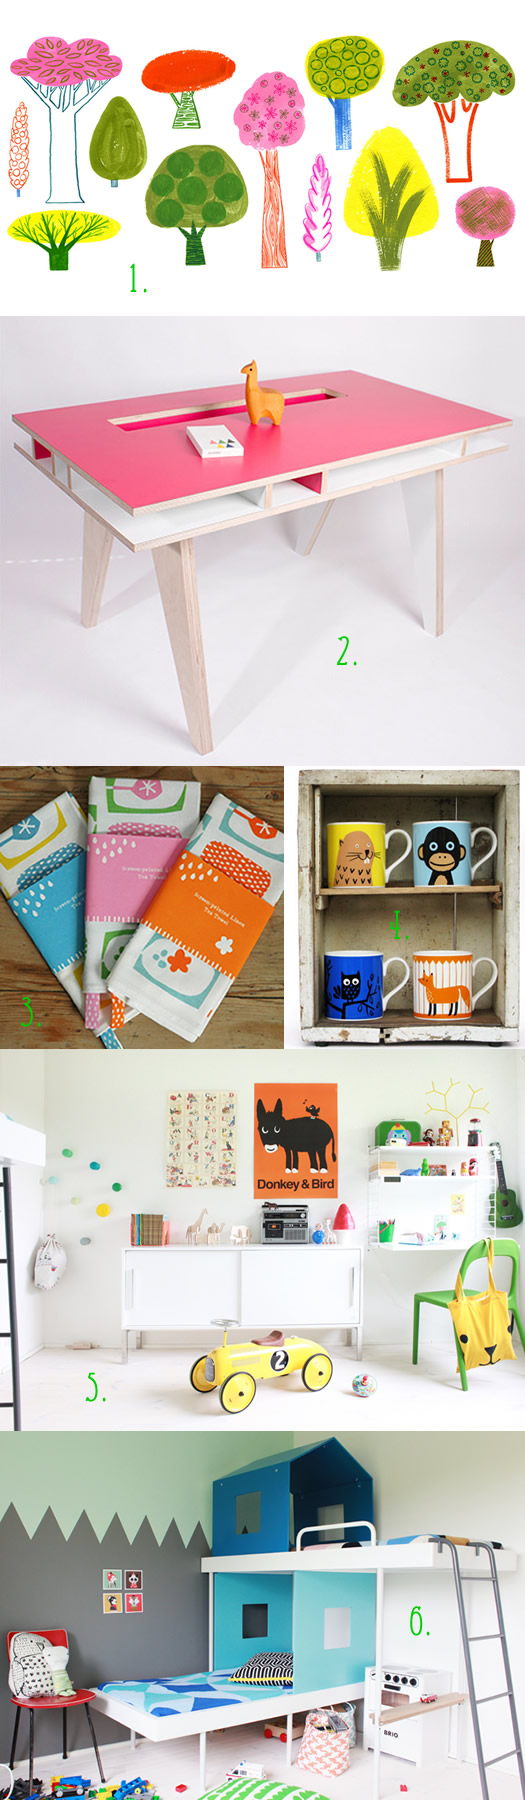 Favorites by RTIF BKids and others